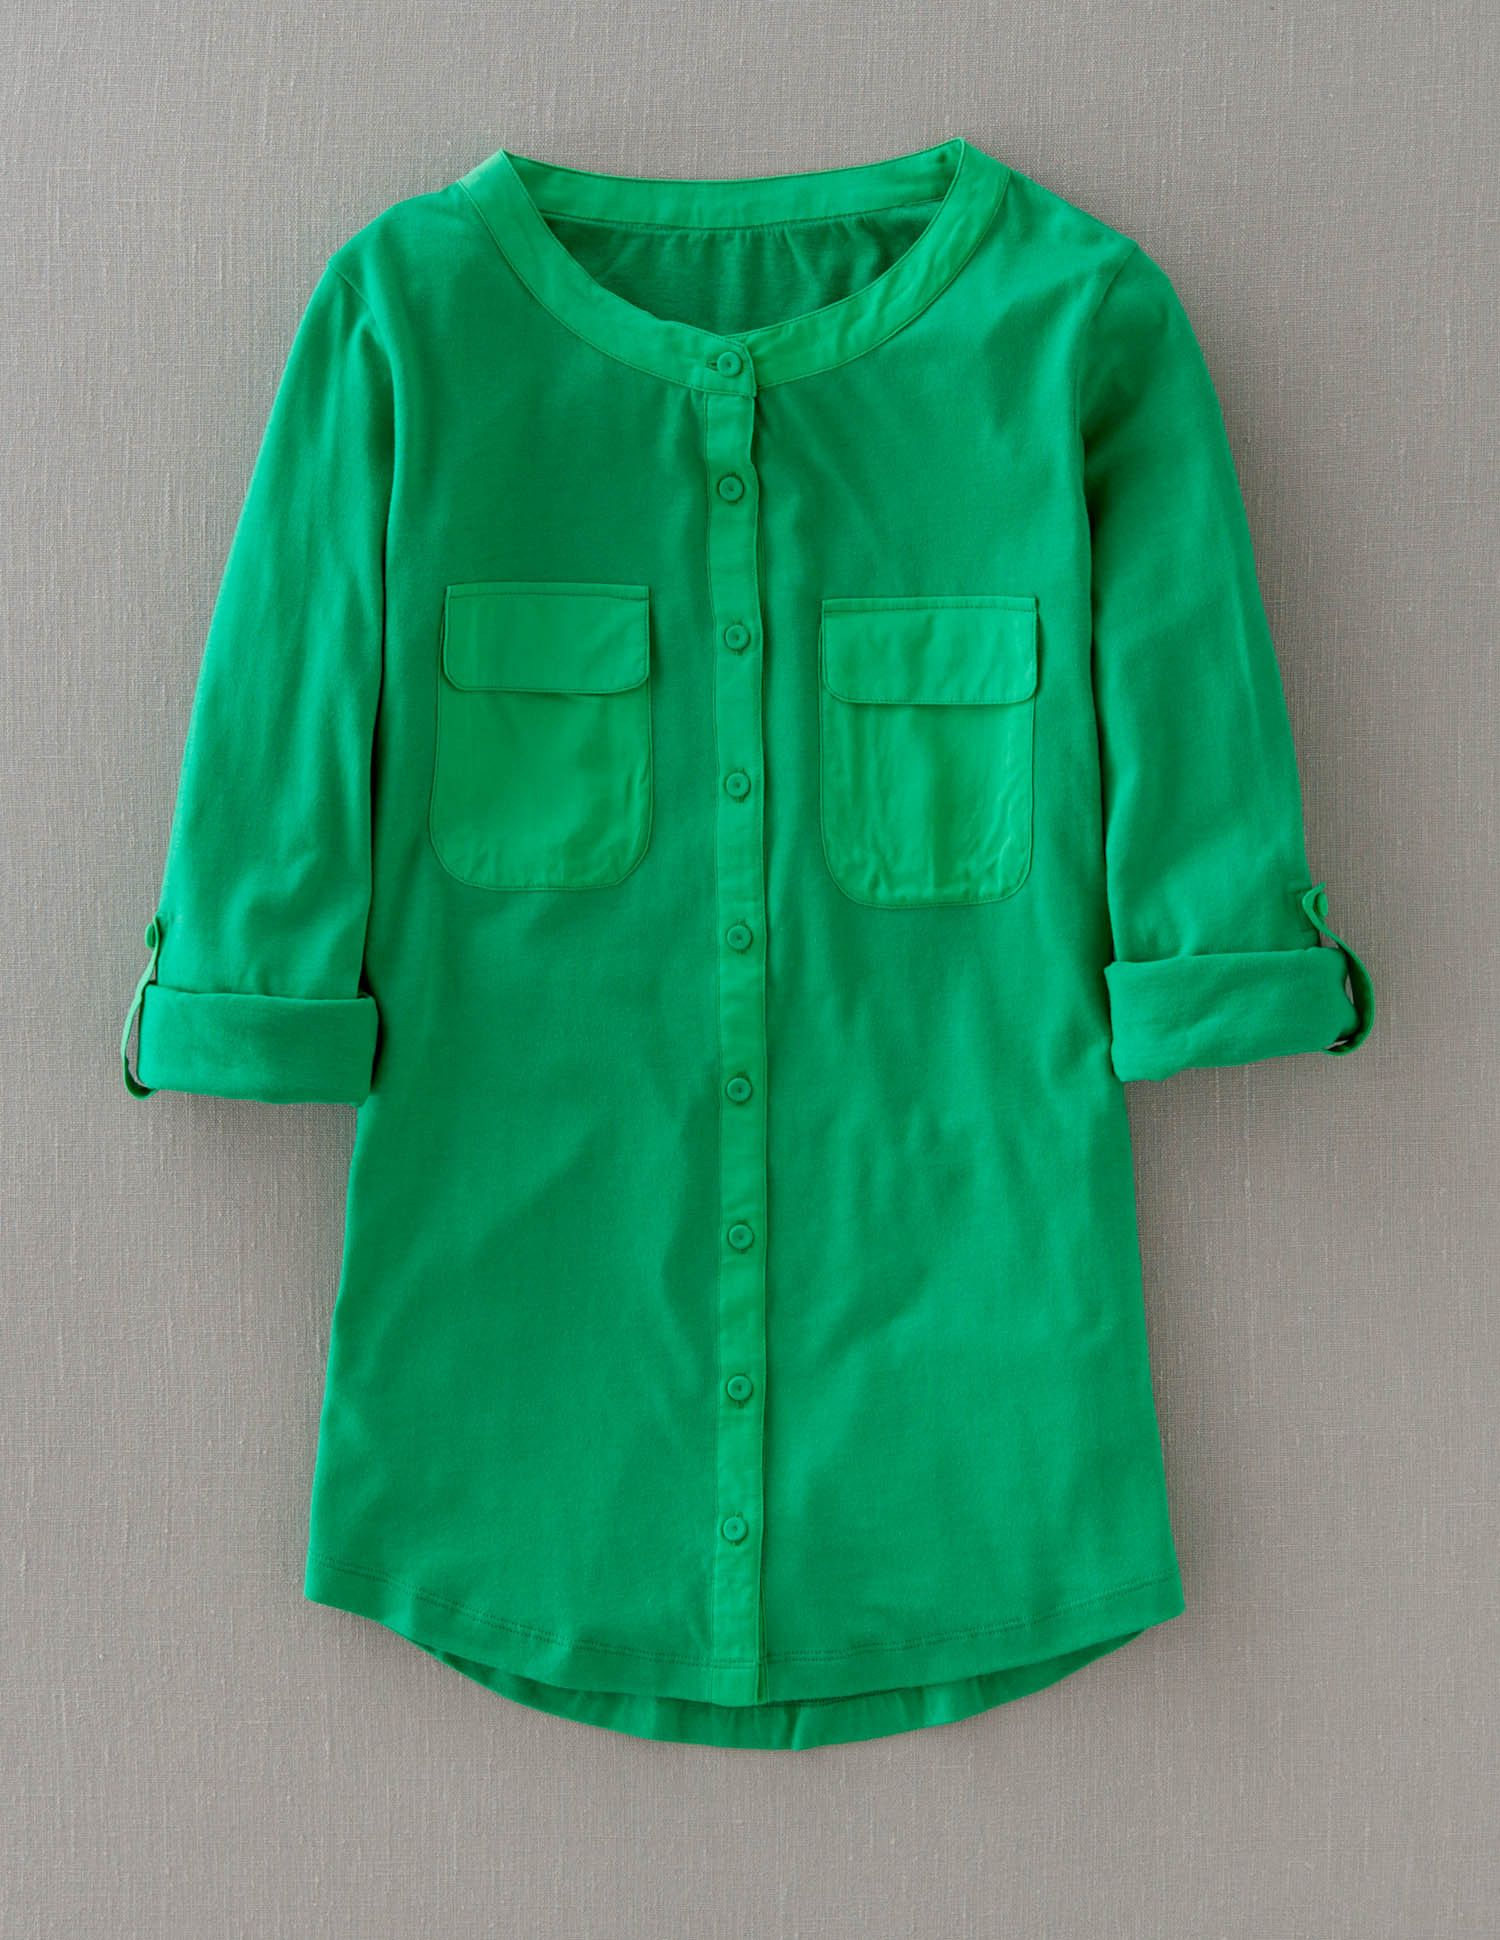 Womens Green Shirts Photo Album - Reikian